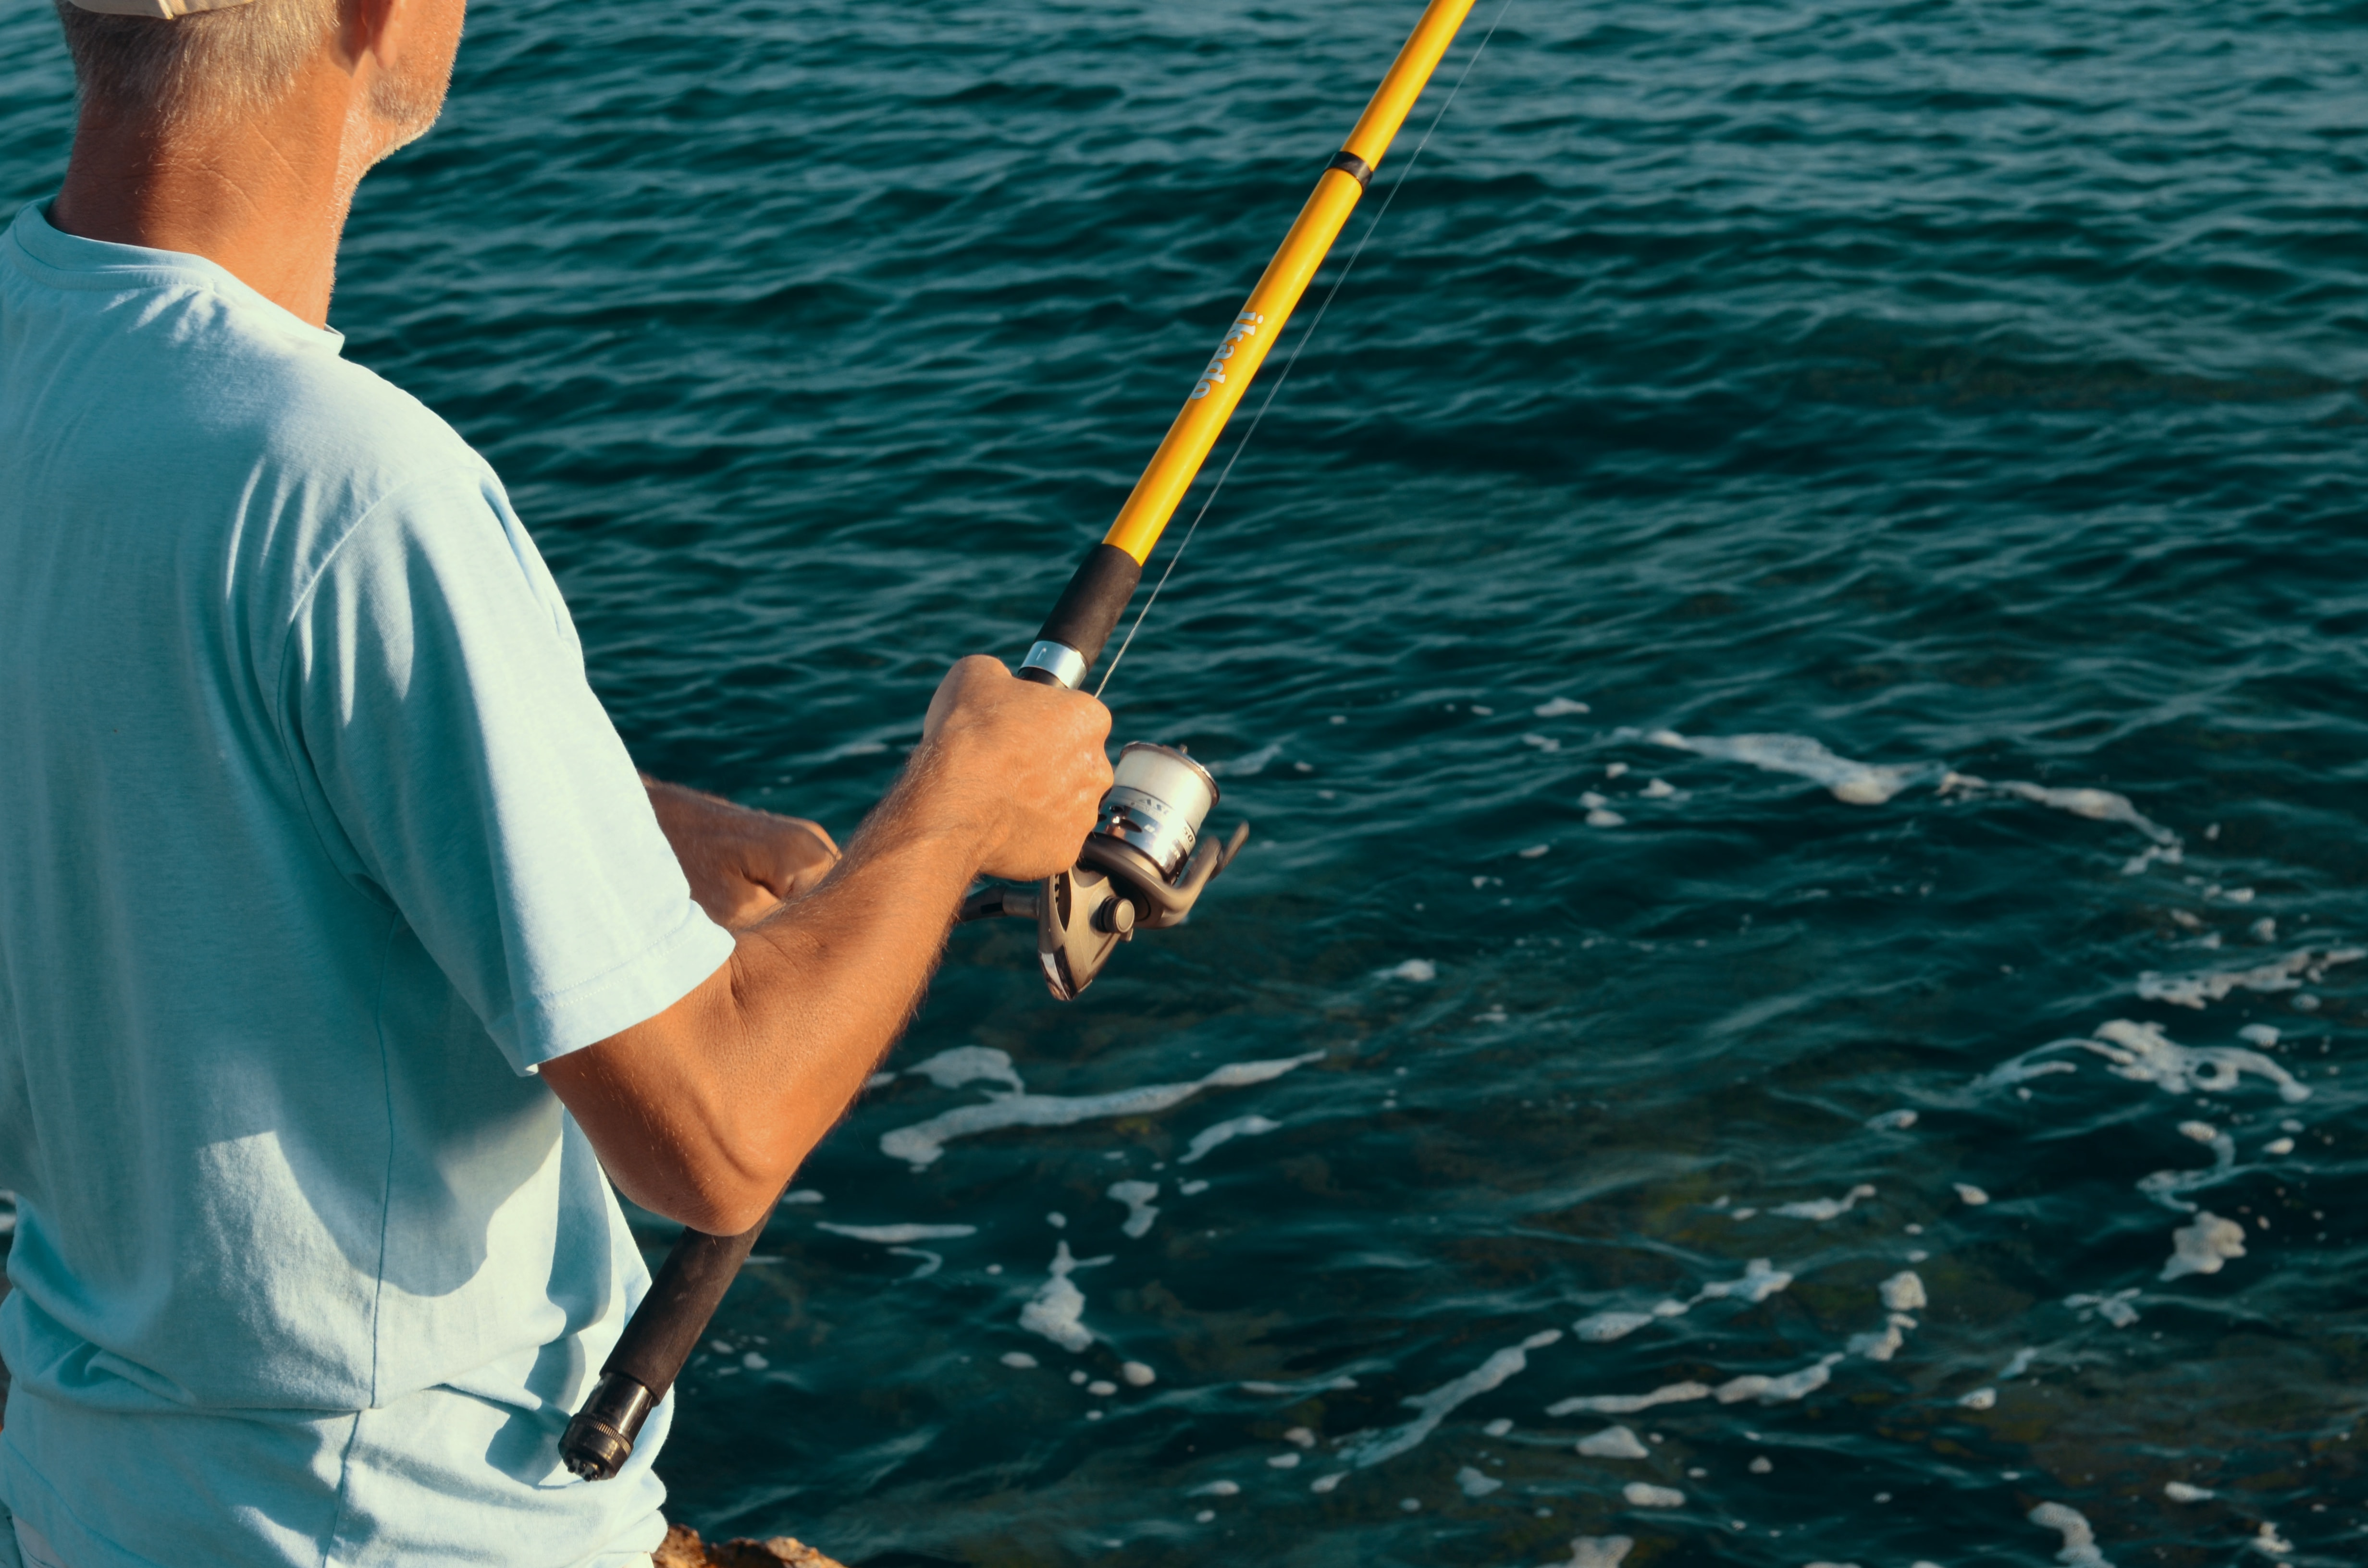 Man fishing with yellow pole in dark blue waters.